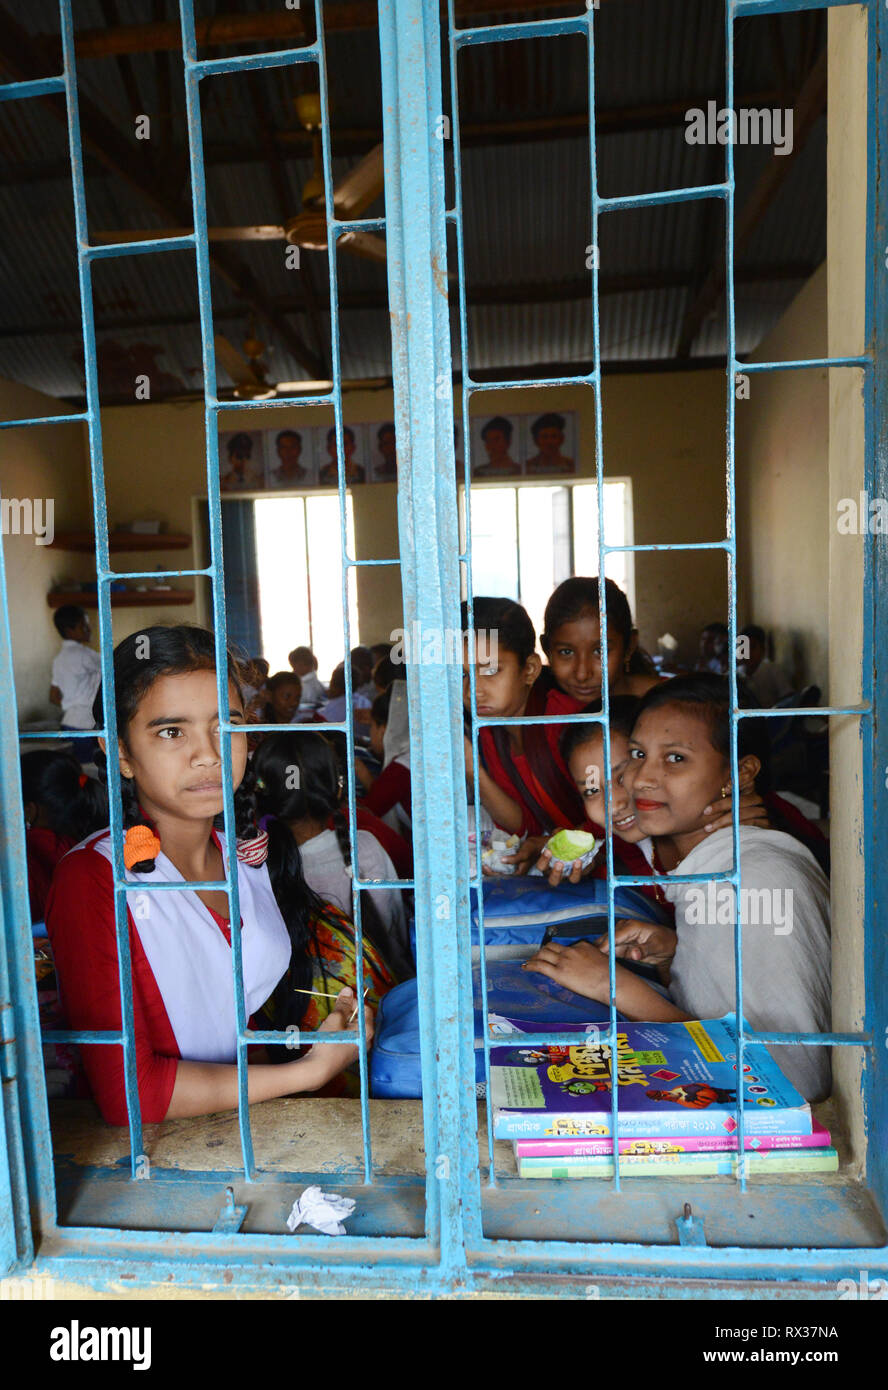 Bangladeshi Students Stock Photos & Bangladeshi Students